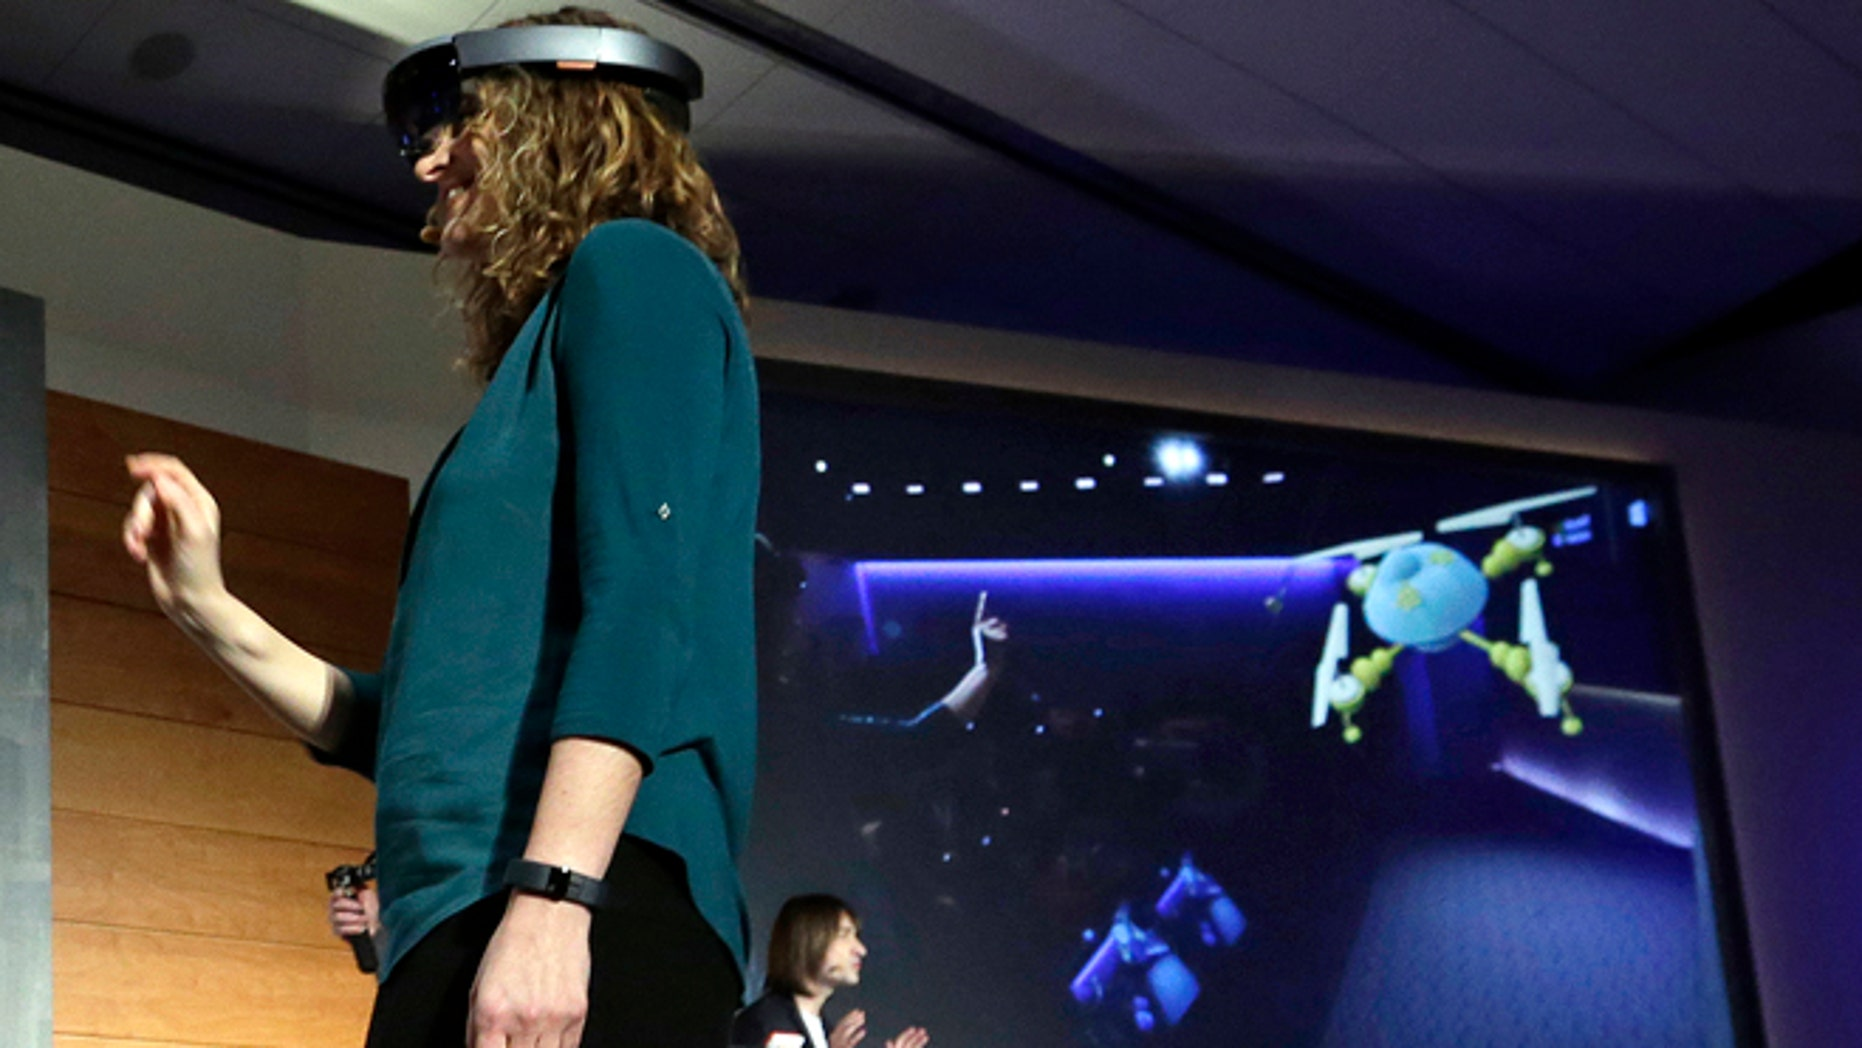 "In this photo taken Wednesday, Jan. 21, 2015, Microsoft's Lorraine Bardeen demonstrates a hologram device as what she ""sees"" is projected on a screen behind during an event at the company's headquarters in Redmond, Wash. With the new HoloLens headset, Microsoft is offering real-world examples to show how you might use three-dimensional digital images _ or holograms _ in daily life. (AP Photo/Elaine Thompson)"